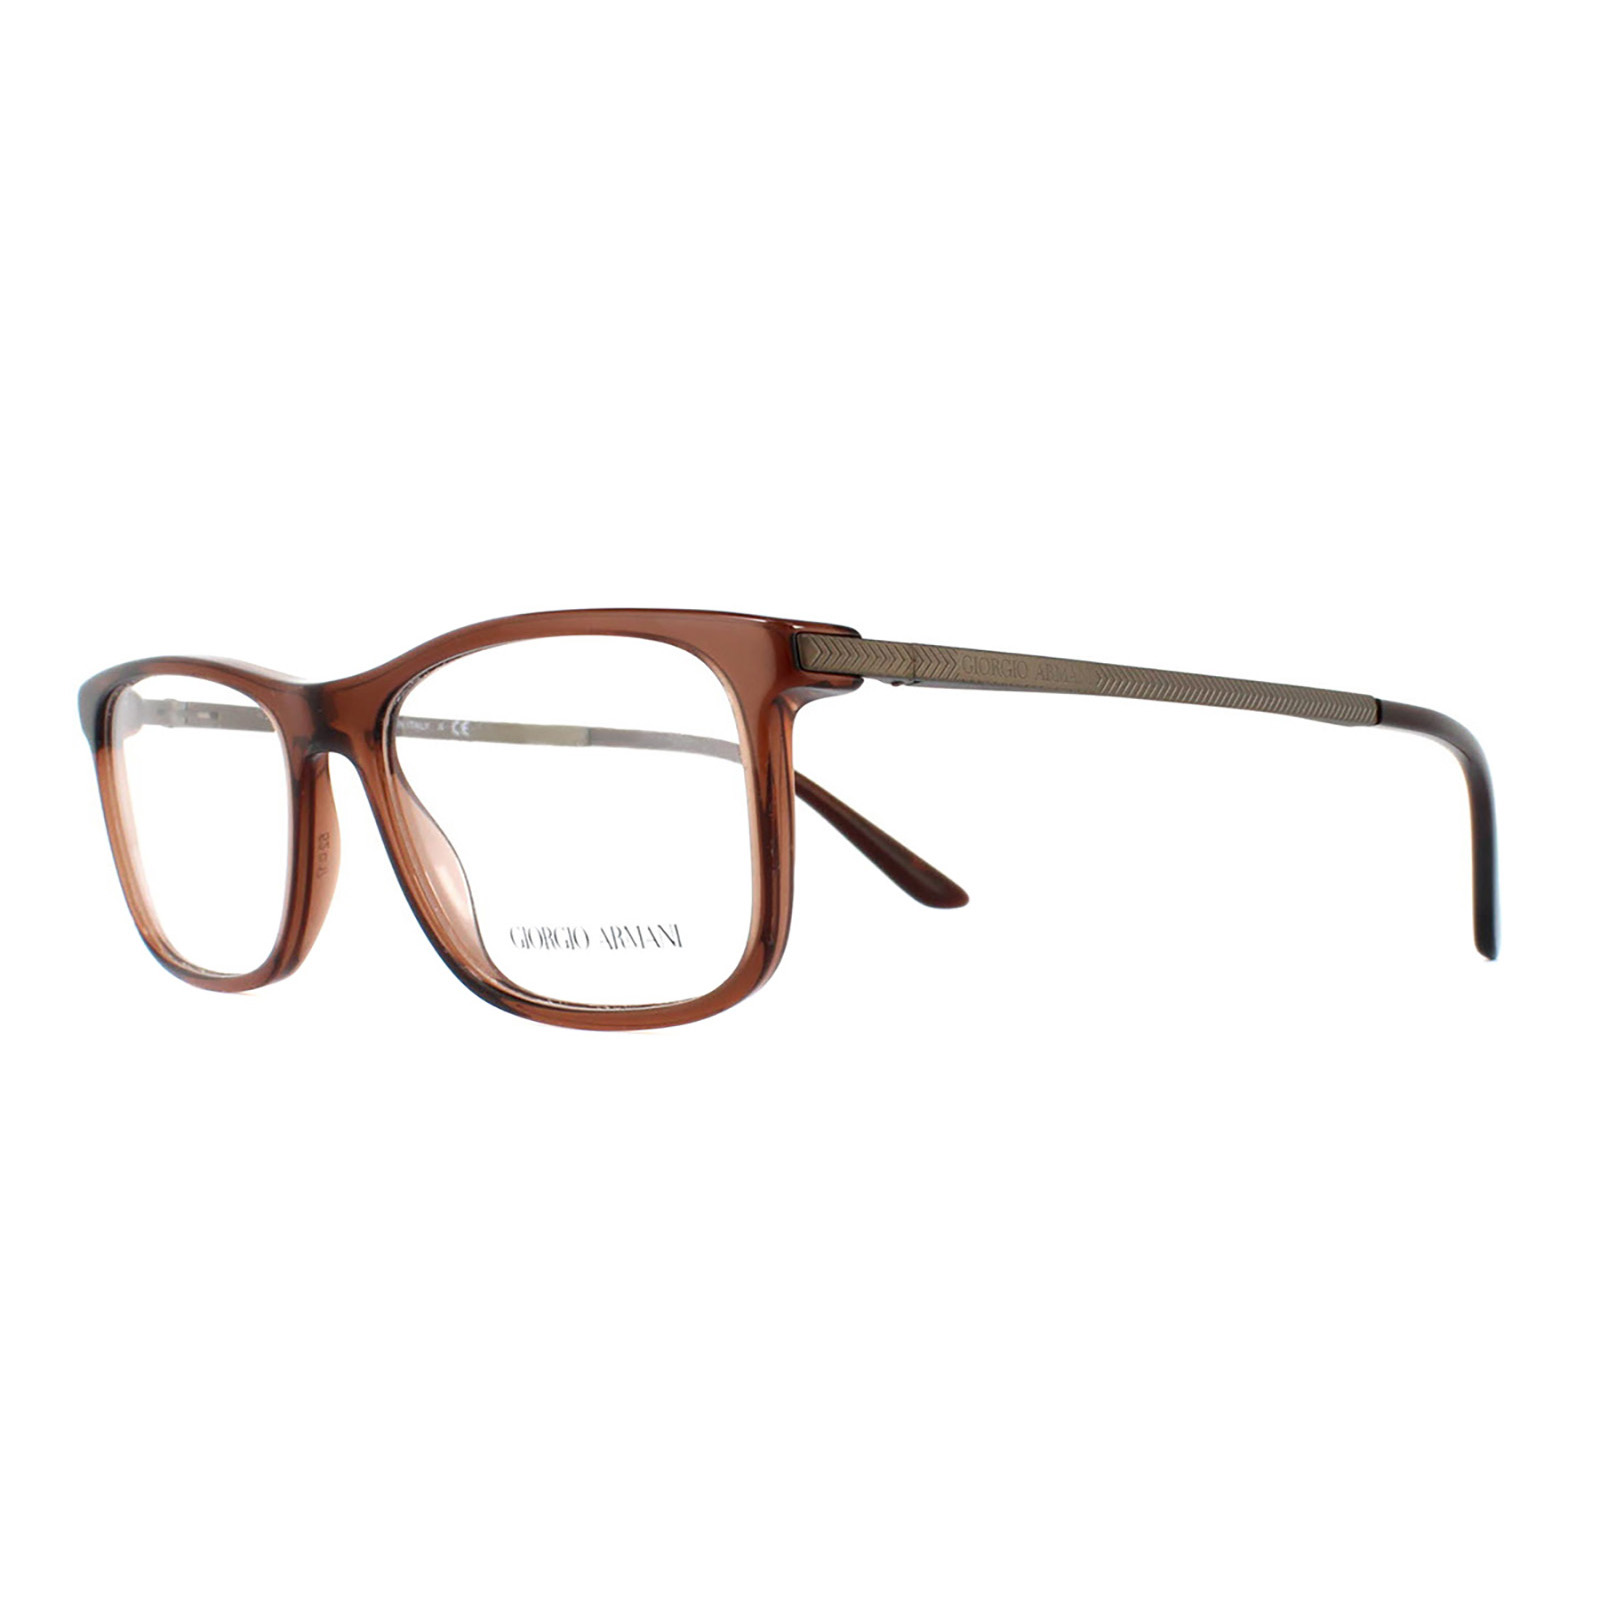 9f3346eb261 Sentinel Giorgio Armani Glasses Frames 7087 5438 Transparent Brown Men 52mm